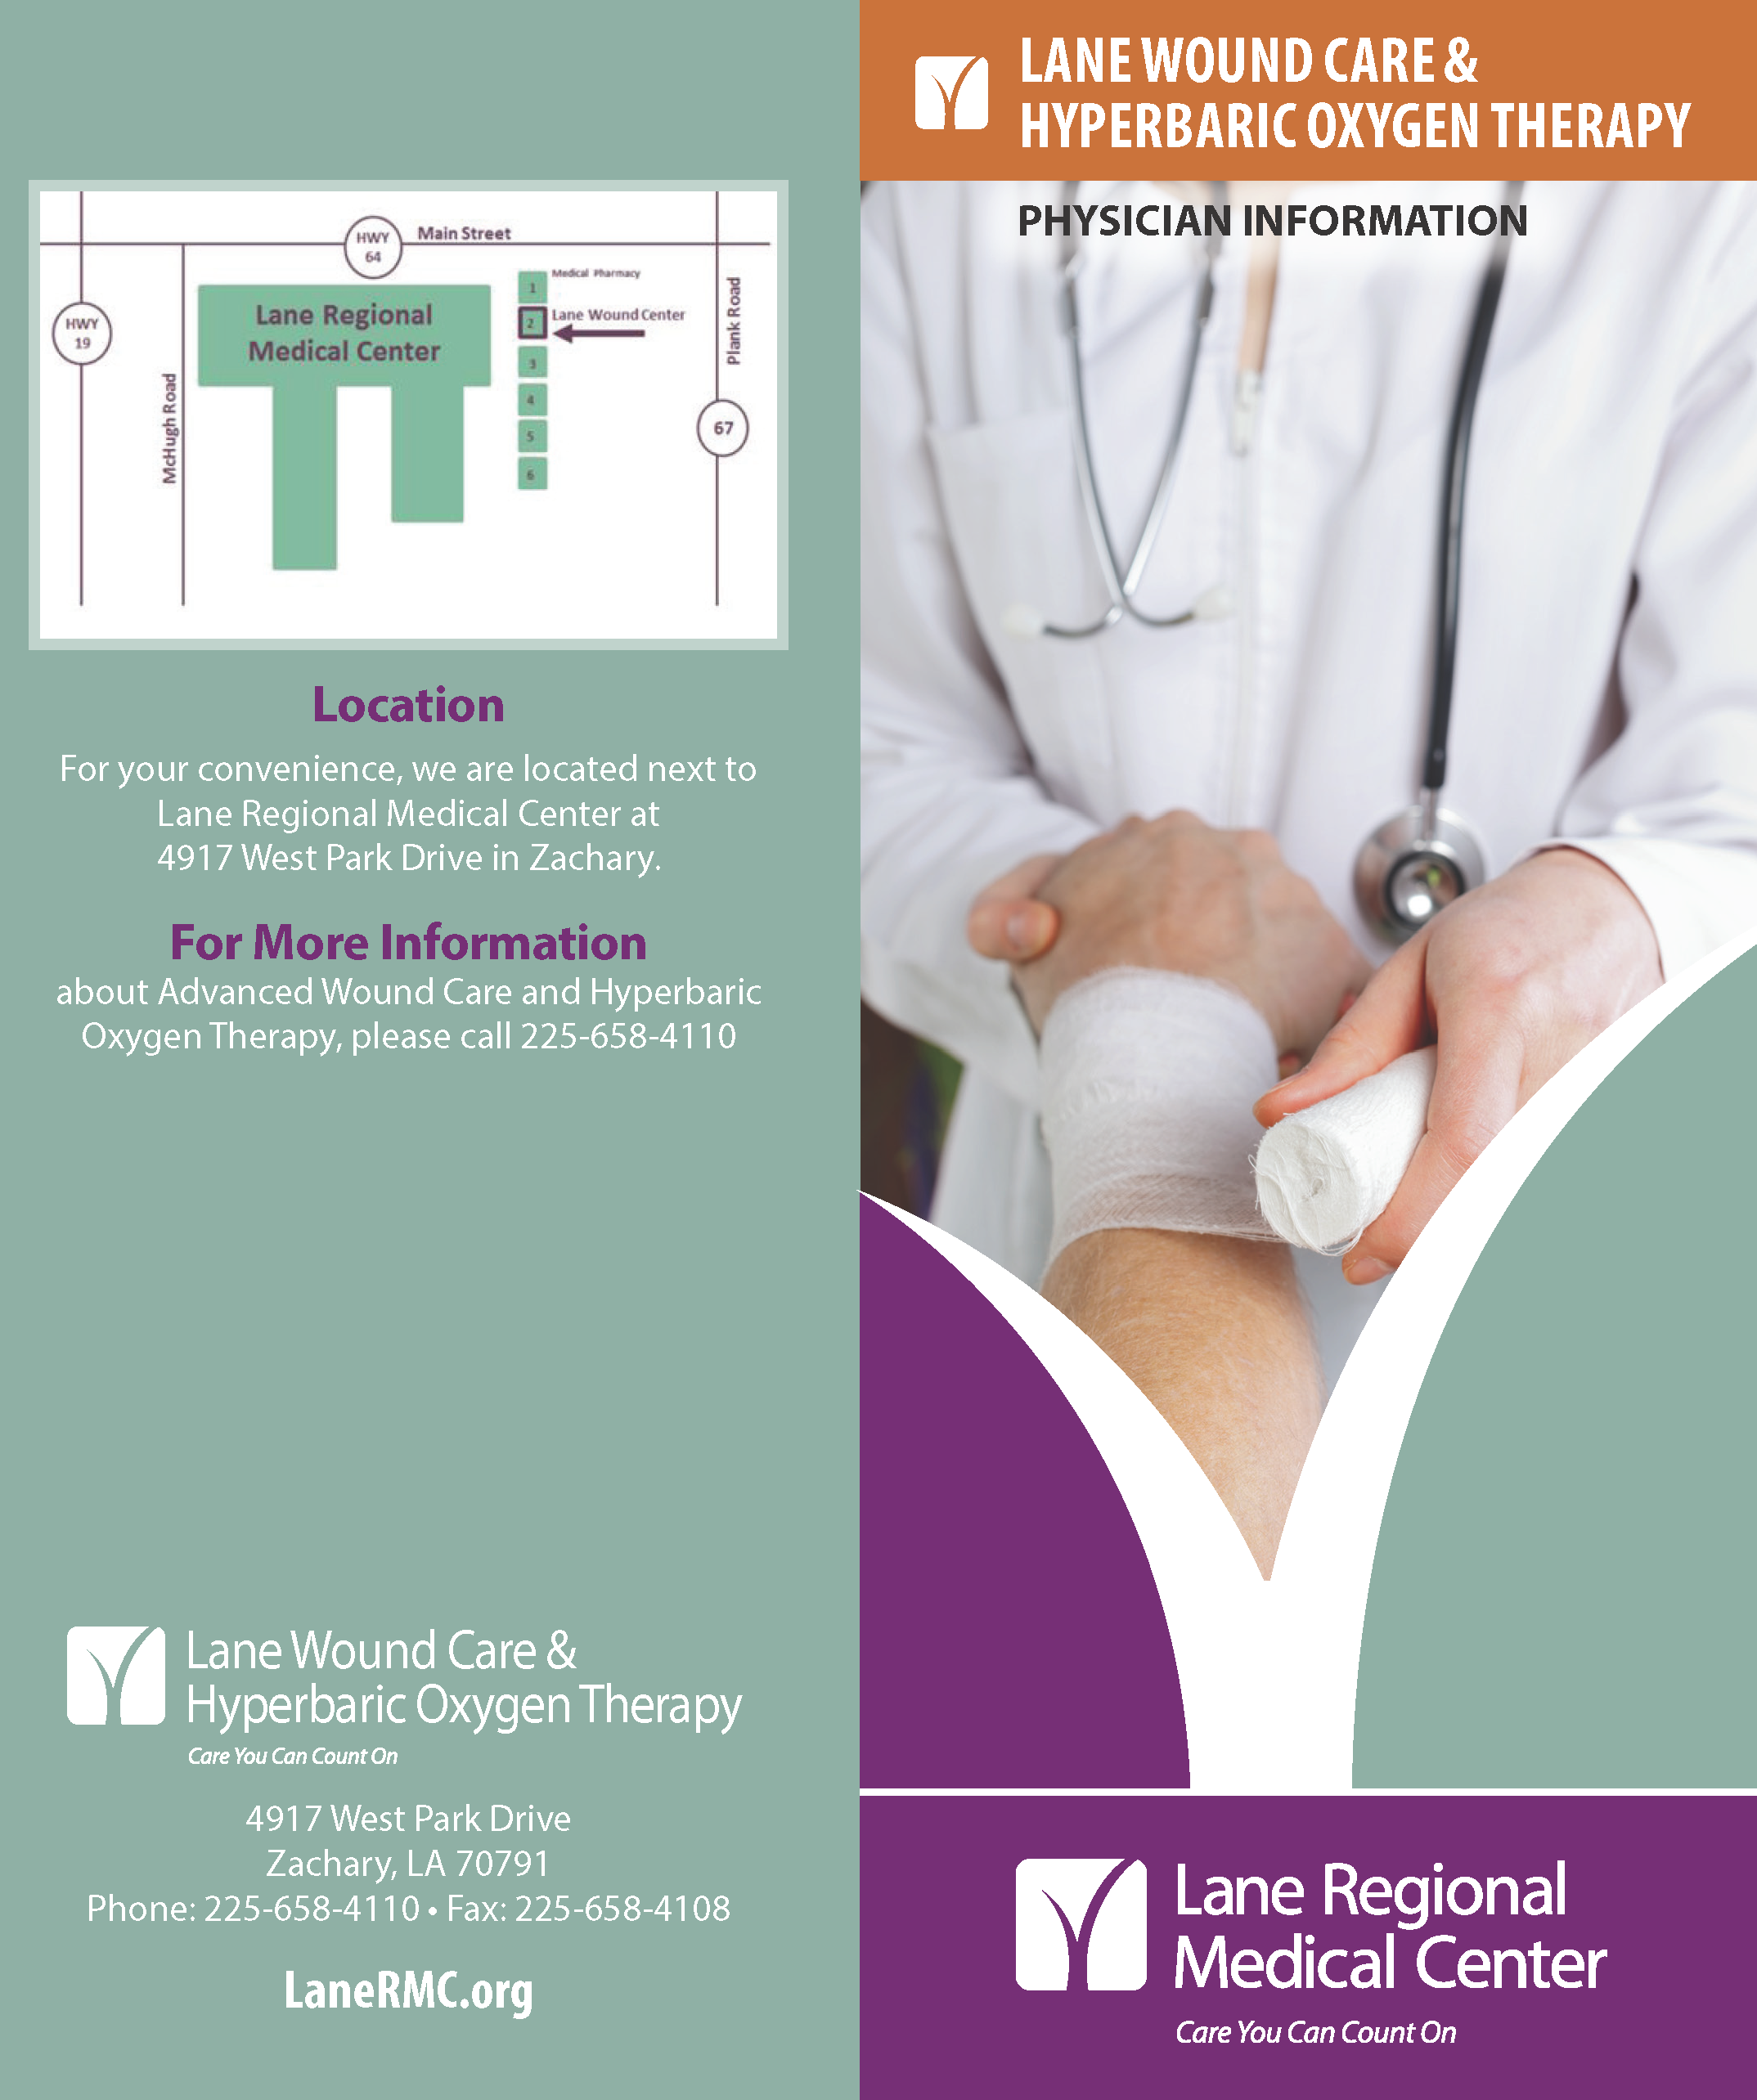 Wound Care and Hyperbaric Oxygen Therapy Physician Brochure